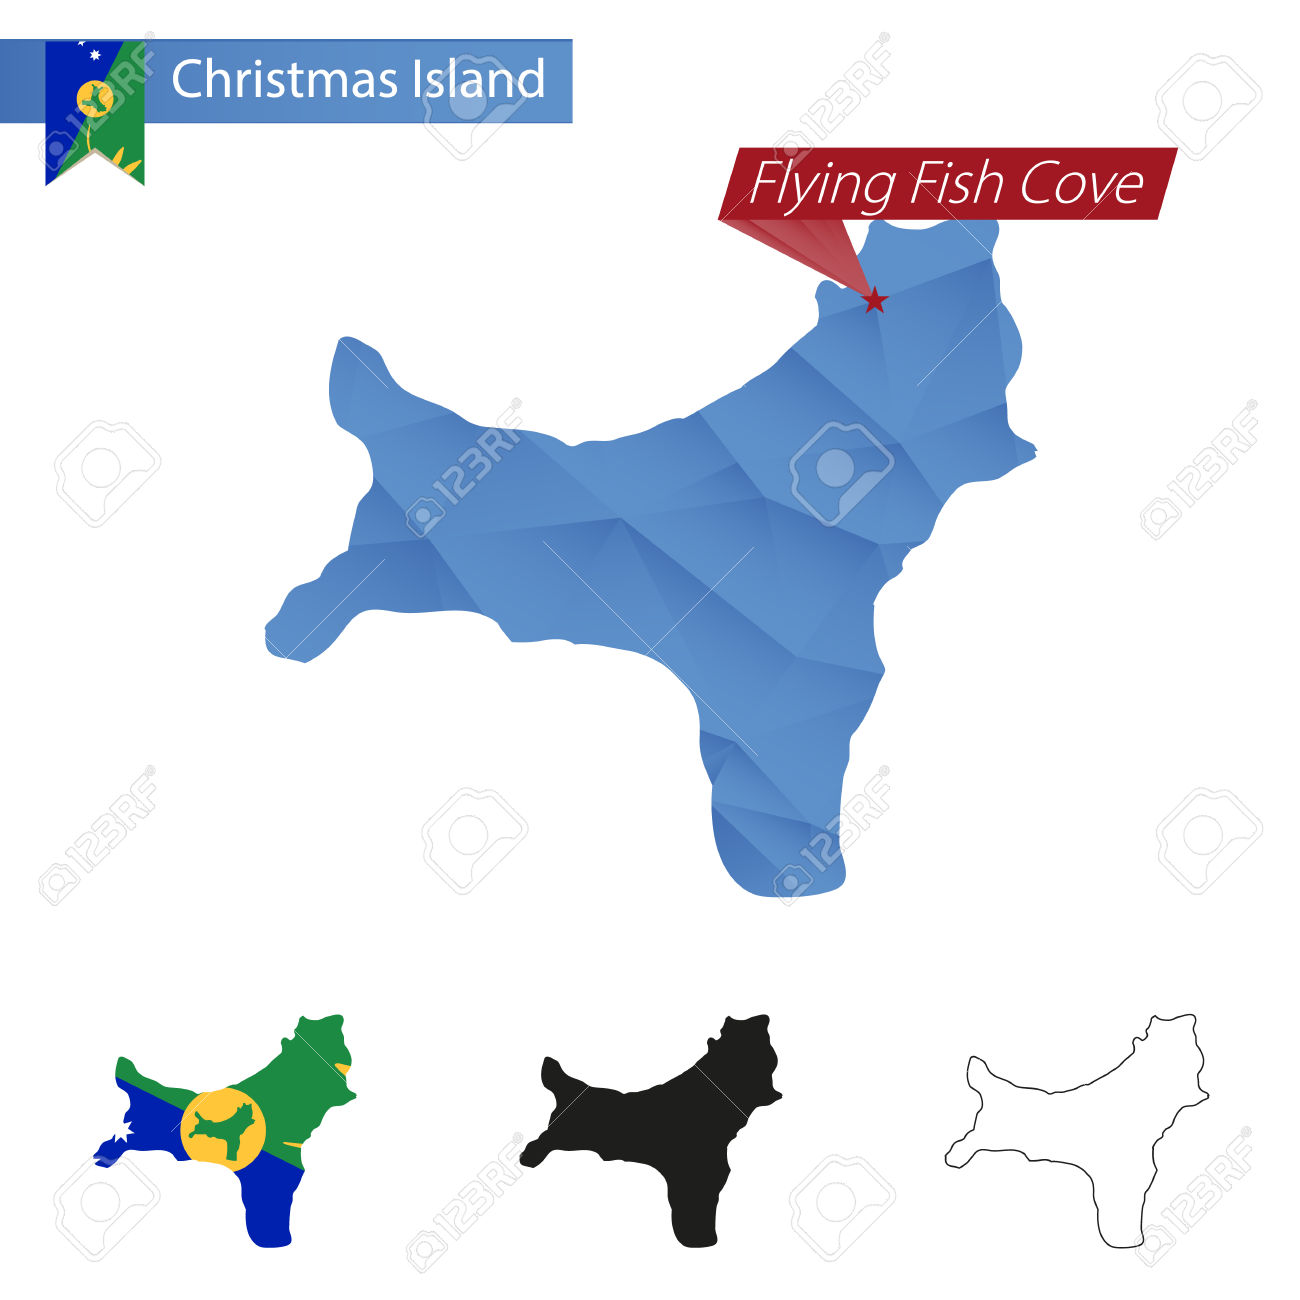 Christmas Island Blue Low Poly Map With Capital Flying Fish Cove.